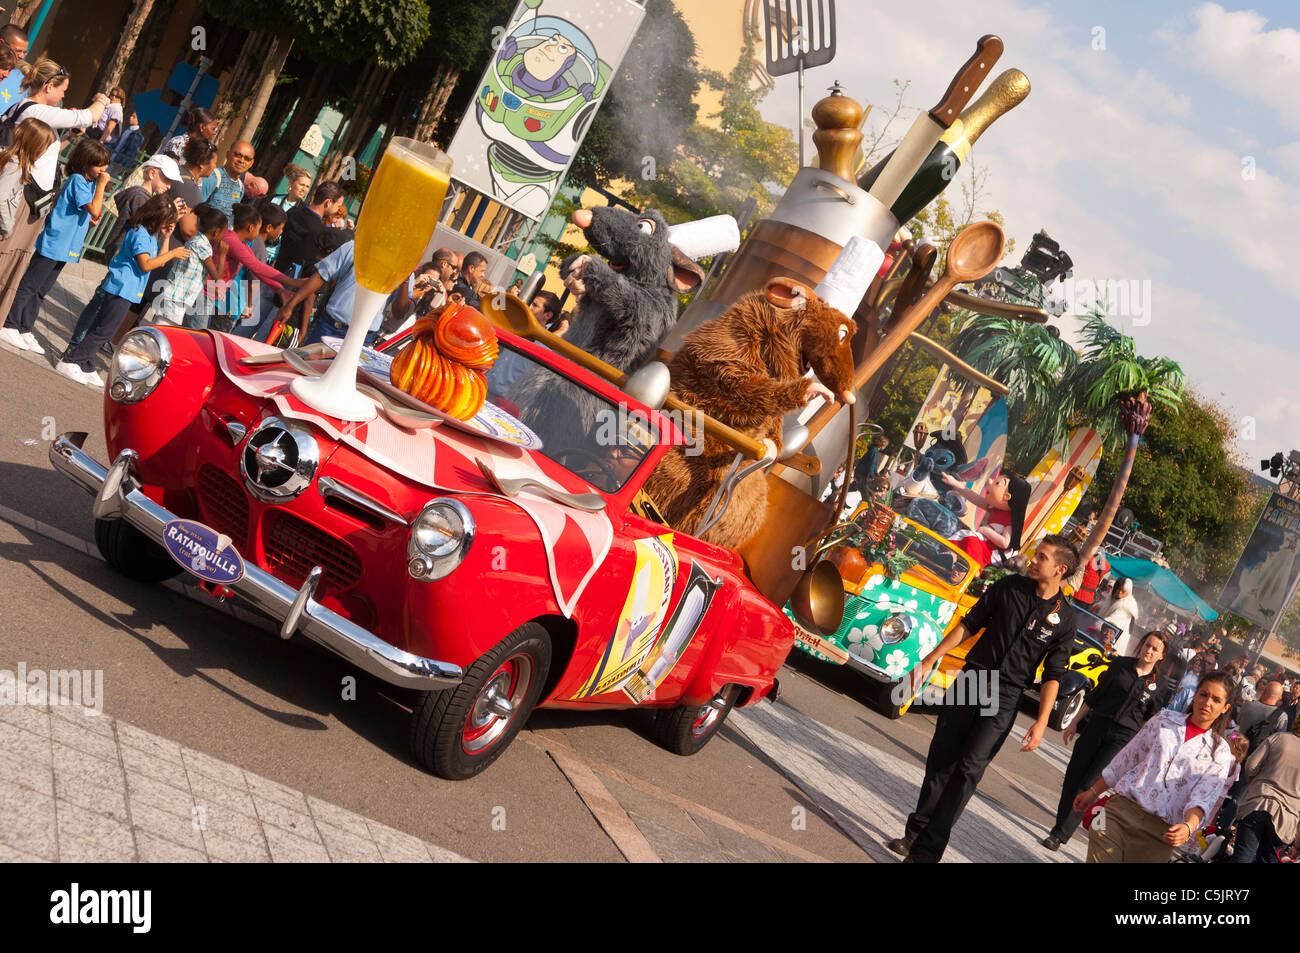 The Stars 'n' Cars parade with ratatouille at Disneyland Paris in France - Stock Image